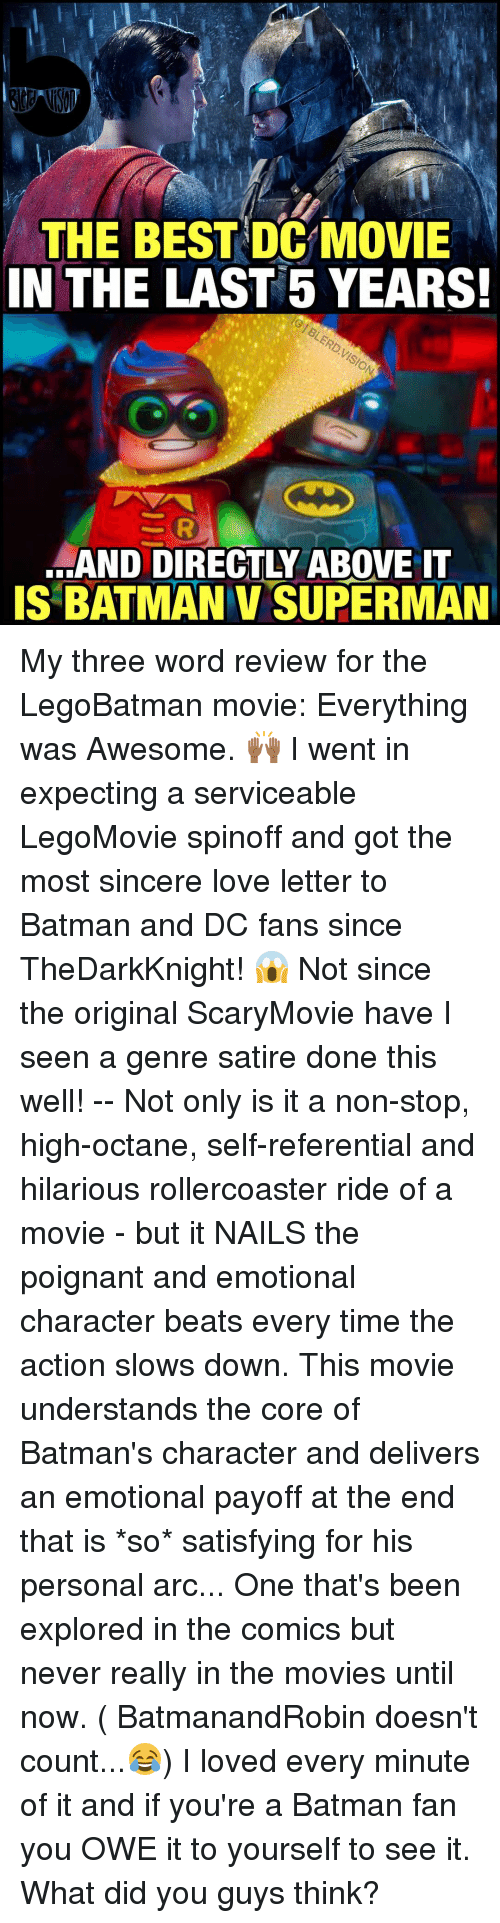 Satisfieing: THE BEST DC MOVIE  IN THE LAST 5 YEARS!  SAND DIRECTLY ABOVE IT  IS BATMAN v SUPERMAN My three word review for the LegoBatman movie: Everything was Awesome. 🙌🏾 I went in expecting a serviceable LegoMovie spinoff and got the most sincere love letter to Batman and DC fans since TheDarkKnight! 😱 Not since the original ScaryMovie have I seen a genre satire done this well! -- Not only is it a non-stop, high-octane, self-referential and hilarious rollercoaster ride of a movie - but it NAILS the poignant and emotional character beats every time the action slows down. This movie understands the core of Batman's character and delivers an emotional payoff at the end that is *so* satisfying for his personal arc... One that's been explored in the comics but never really in the movies until now. ( BatmanandRobin doesn't count...😂) I loved every minute of it and if you're a Batman fan you OWE it to yourself to see it. What did you guys think?